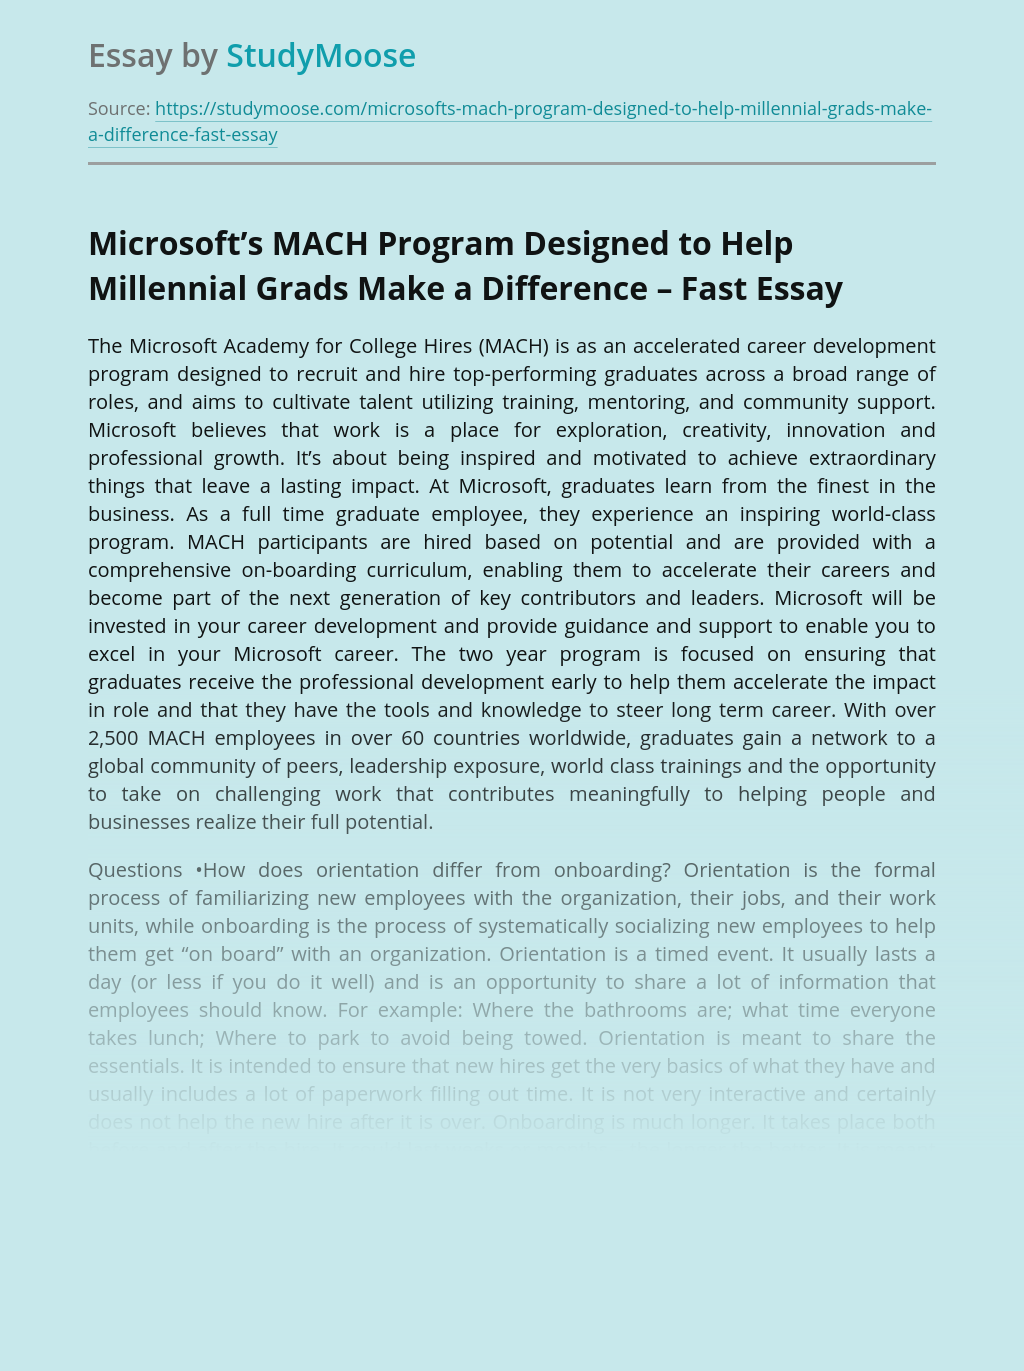 Microsoft's MACH Program Designed to Help Millennial Grads Make a Difference – Fast